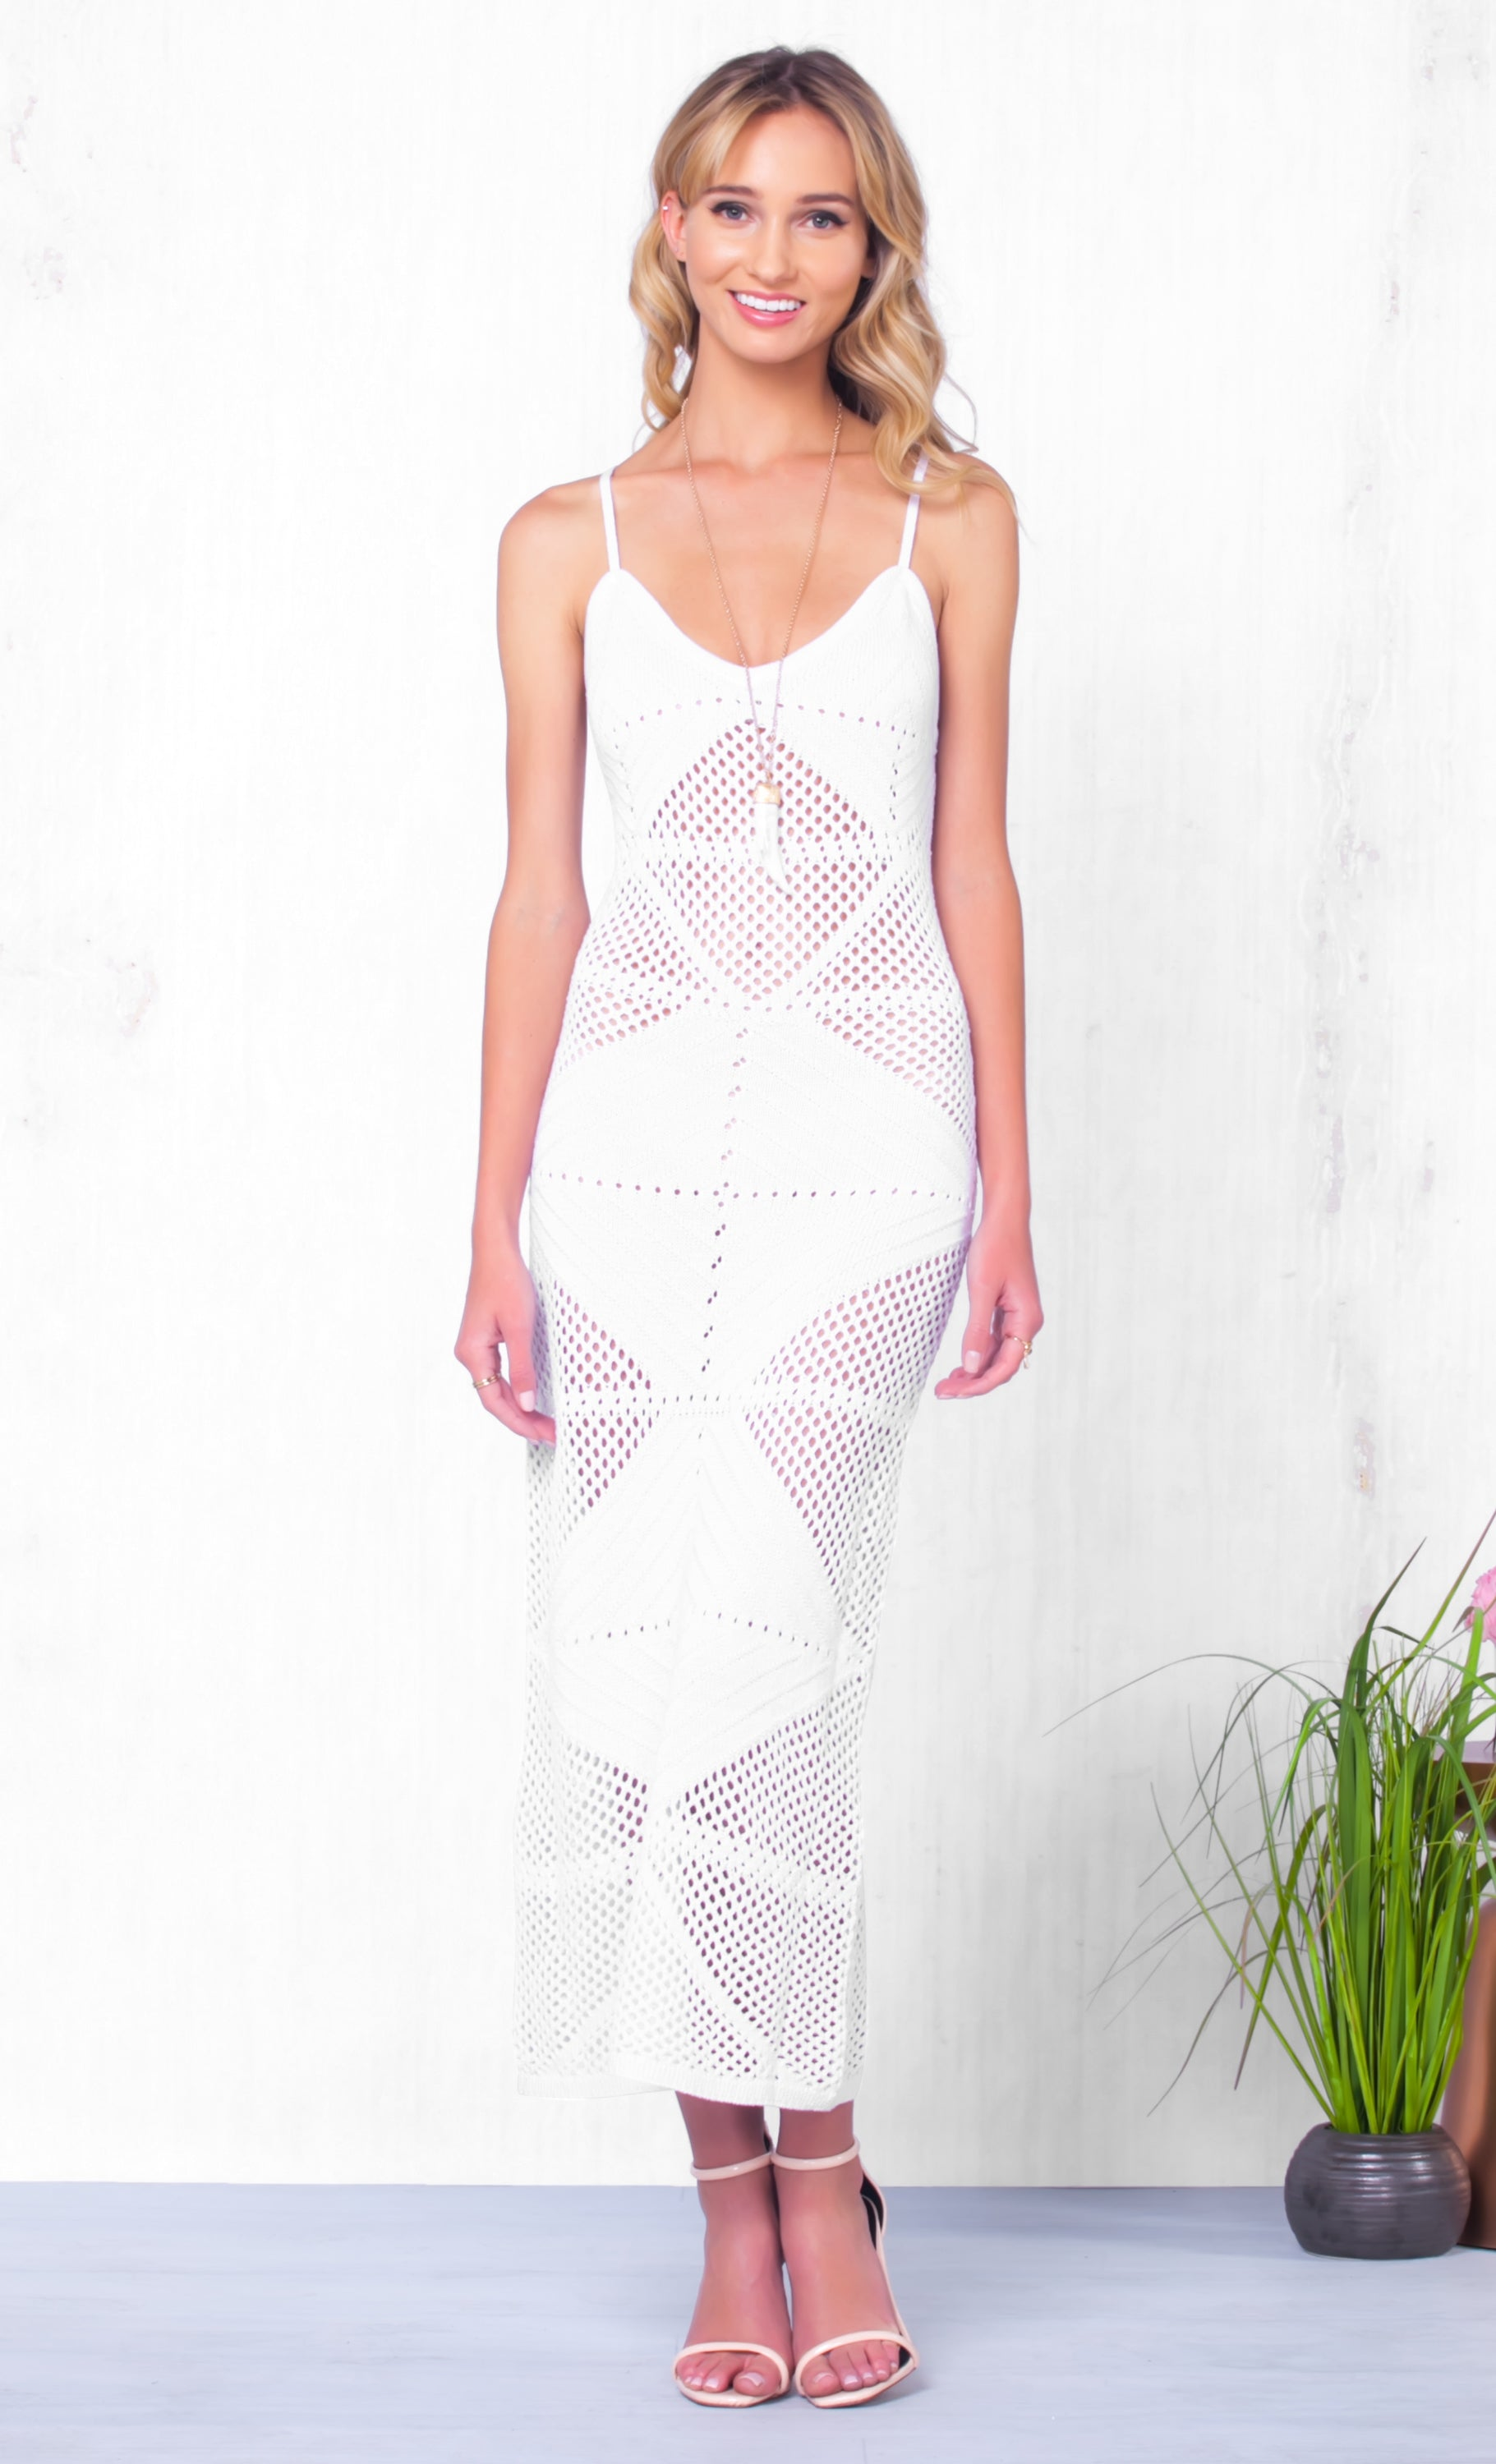 862babf38d0 Indie XO Sweet Escape White Geometric Cut Out Crochet Sleeveless Spaghetti  Strap V Neck Bodycon Casual